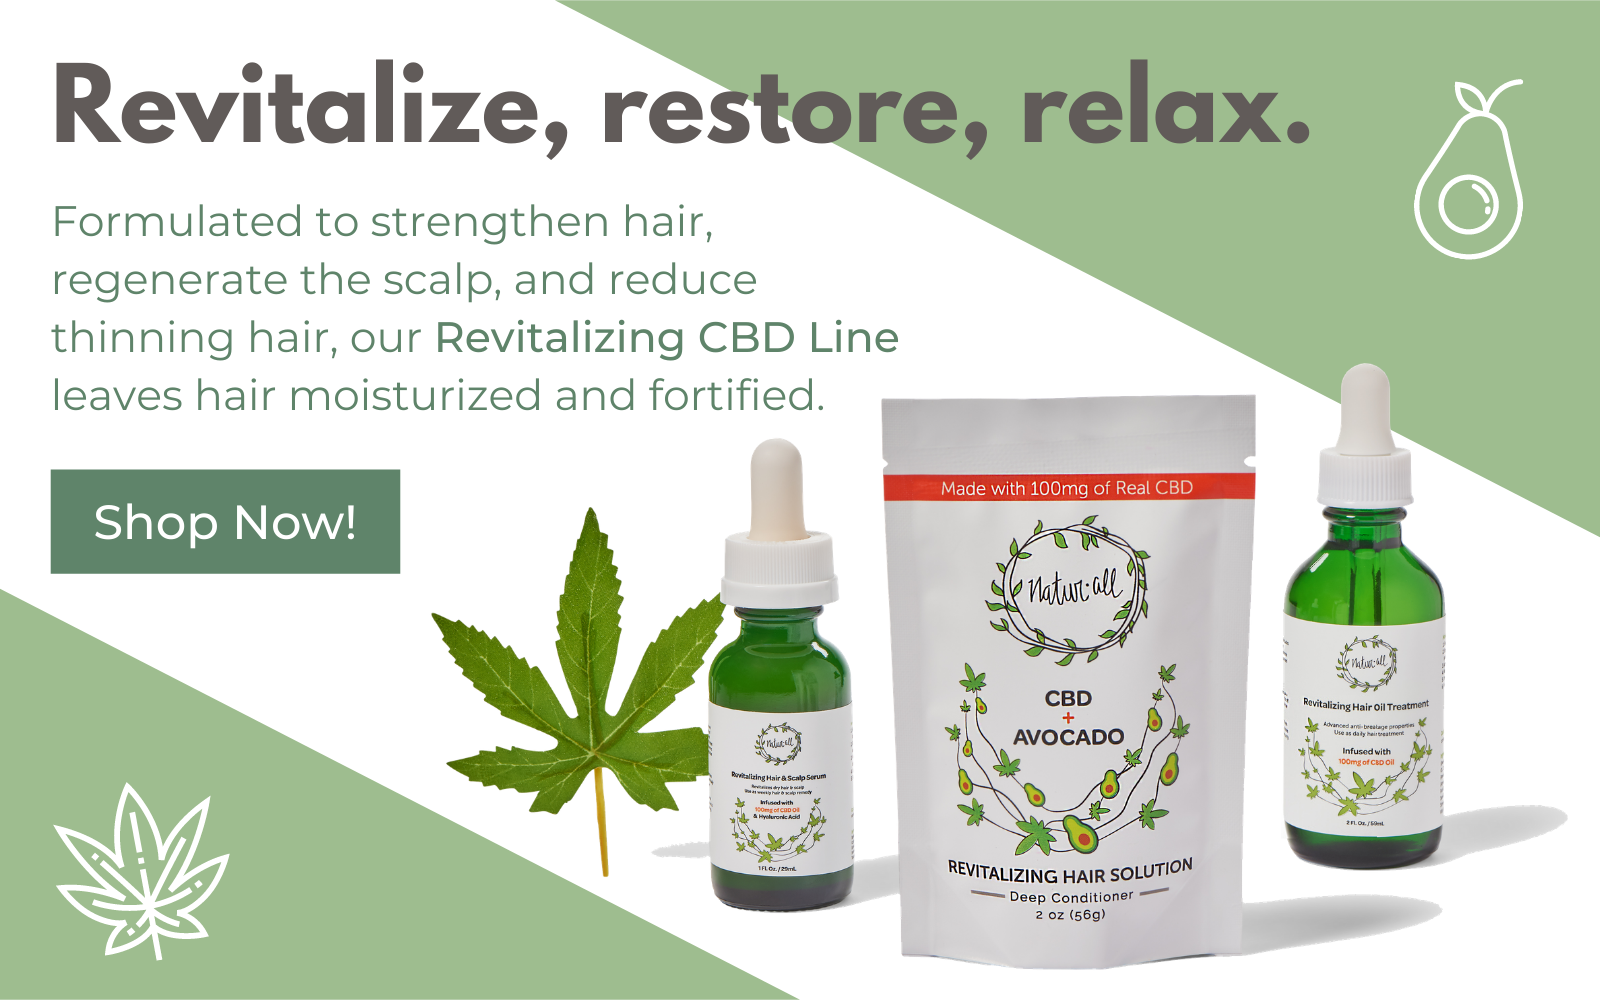 full revitalizing line cbd